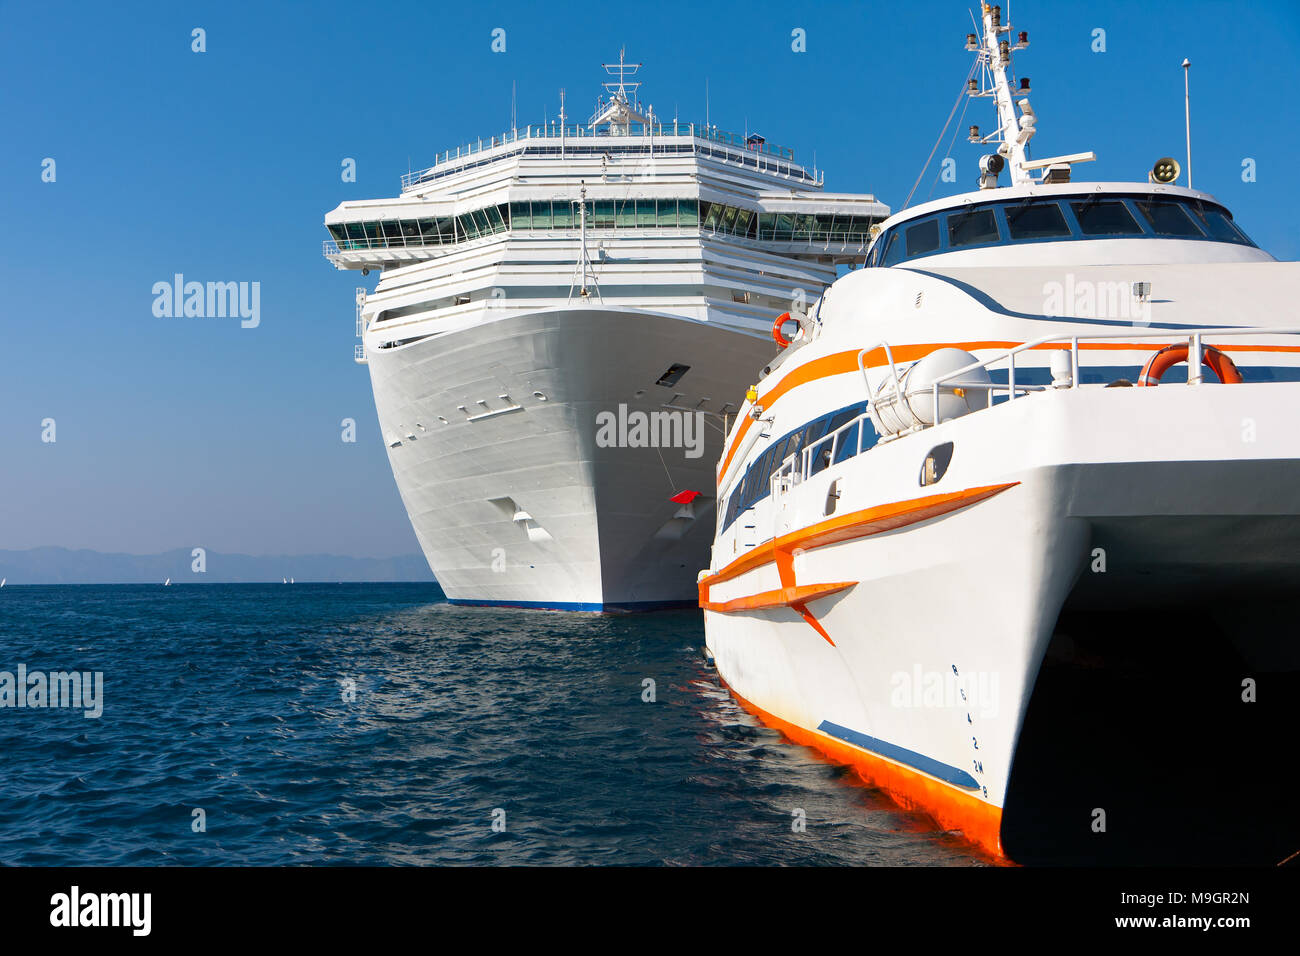 Luxury boats and passenger ships Stock Photo